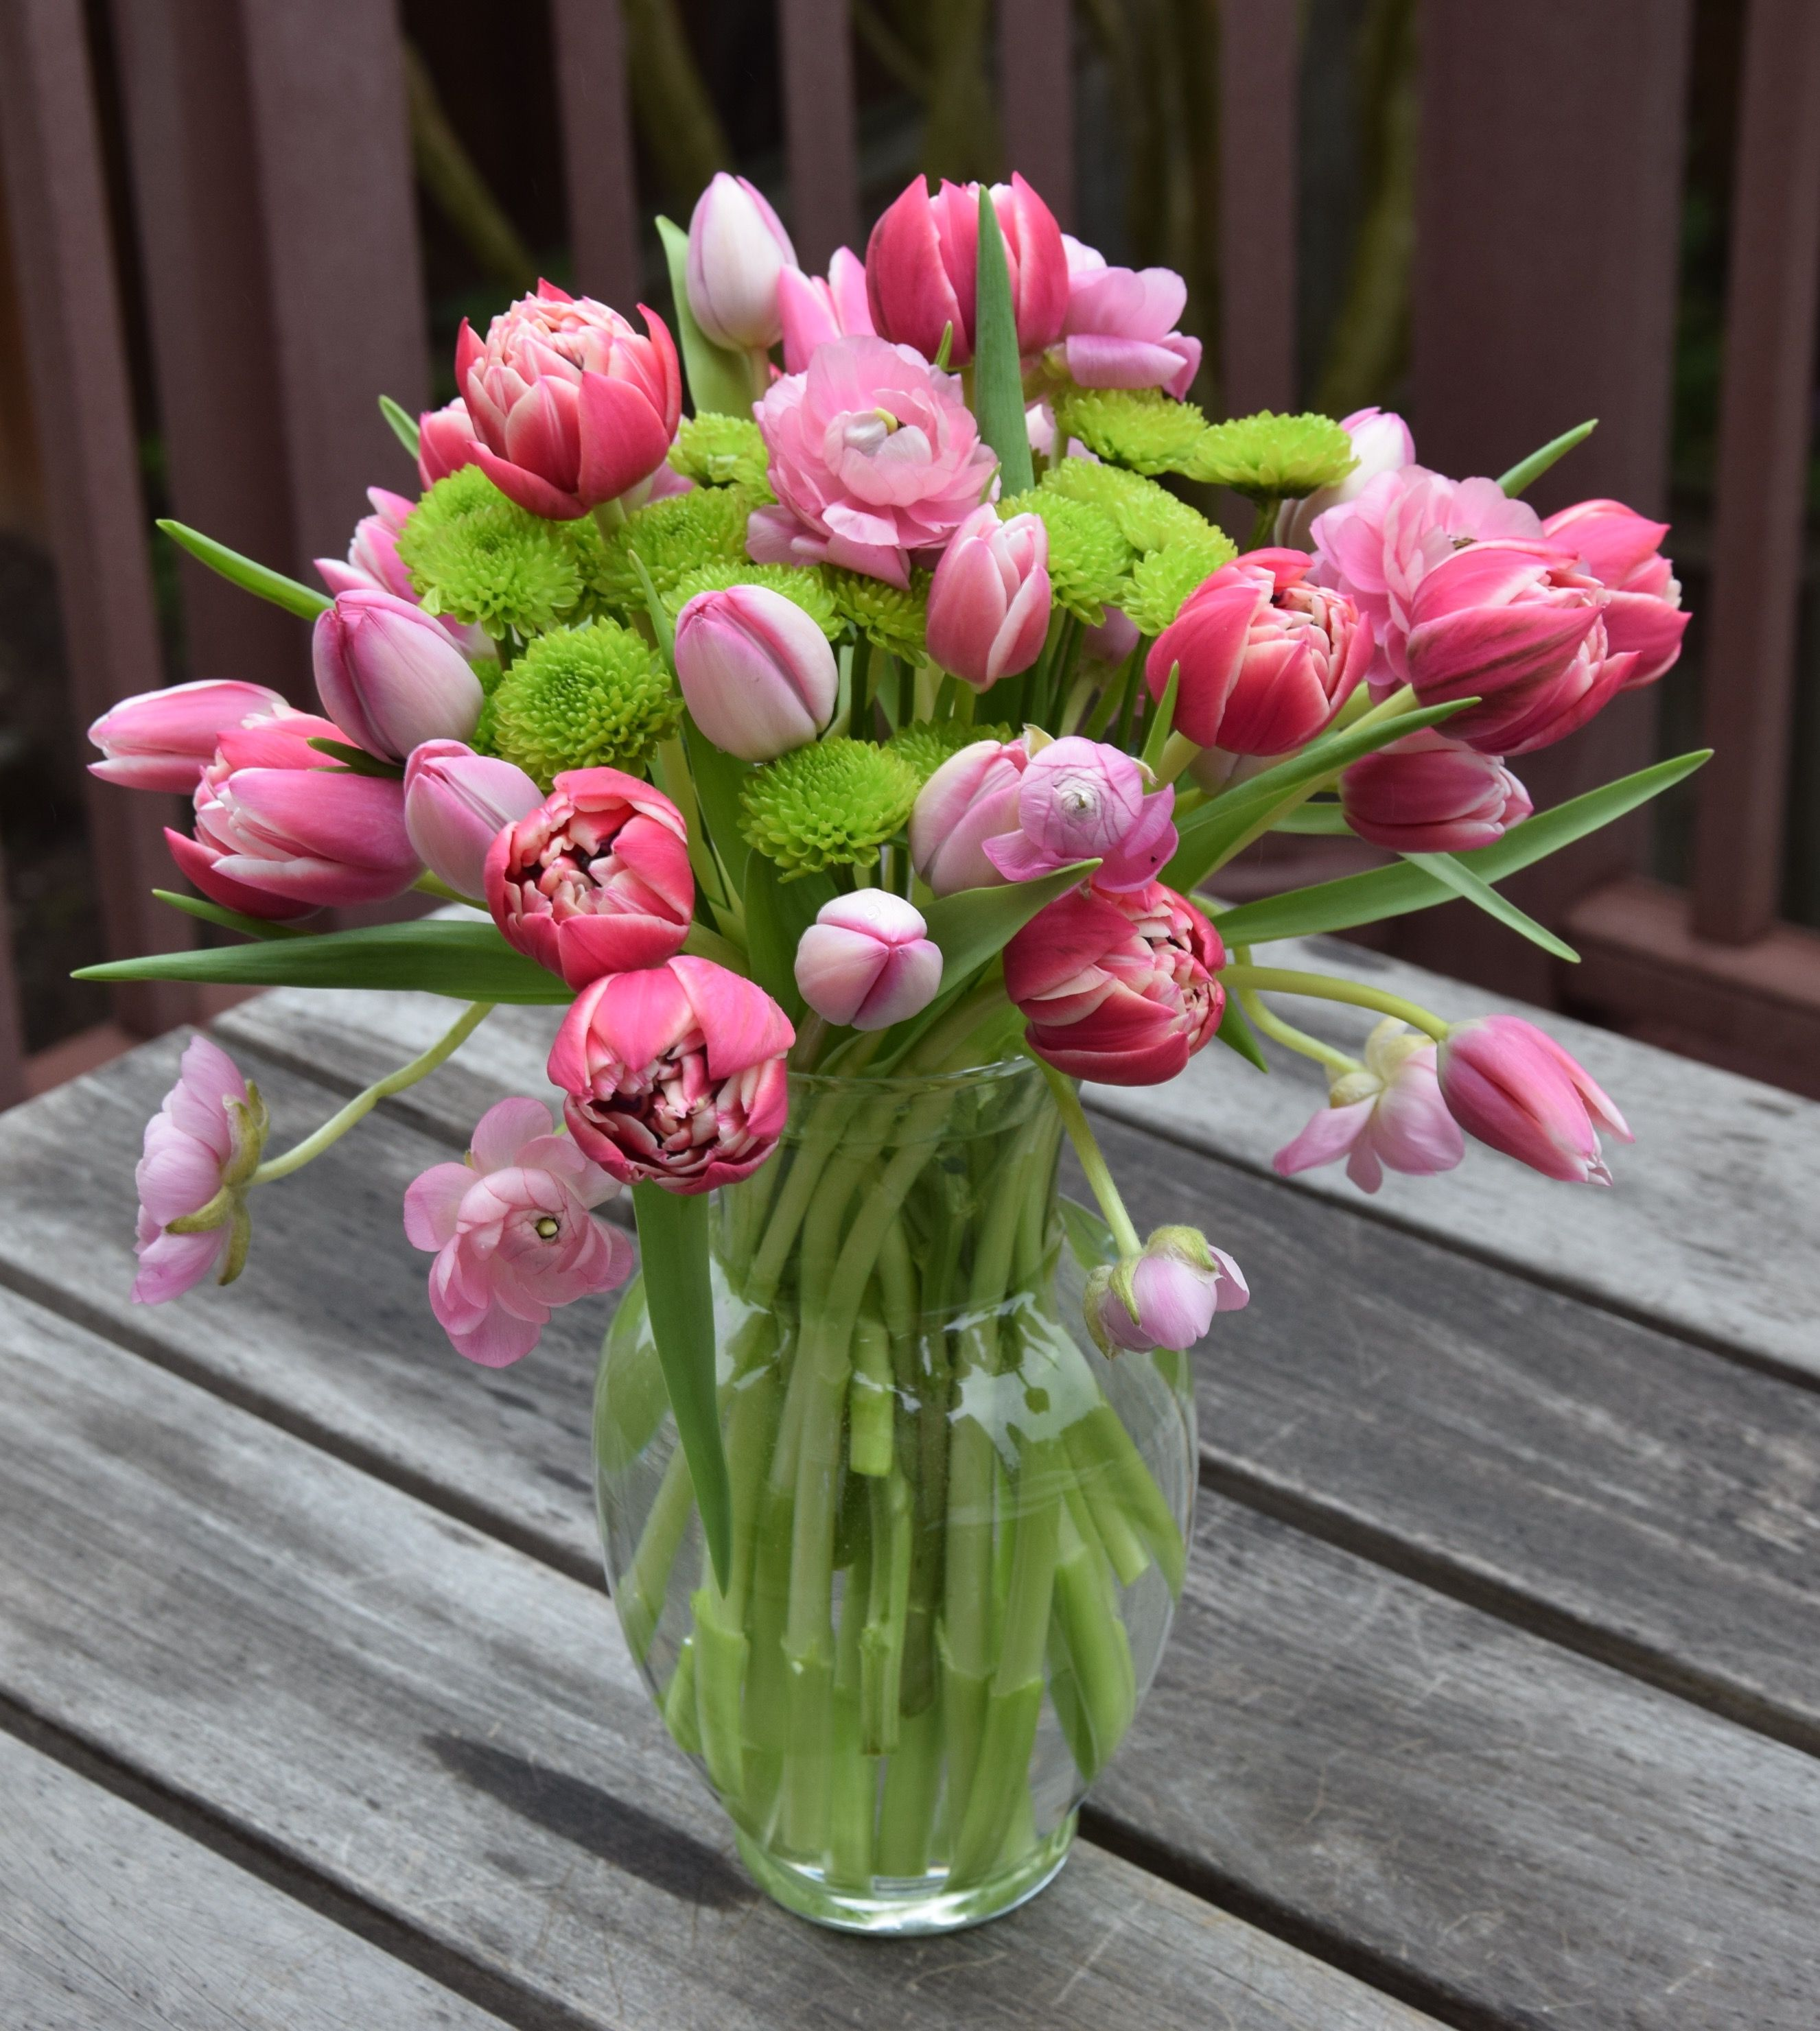 A bouquet of tulips and ranunculus and pom poms fresh